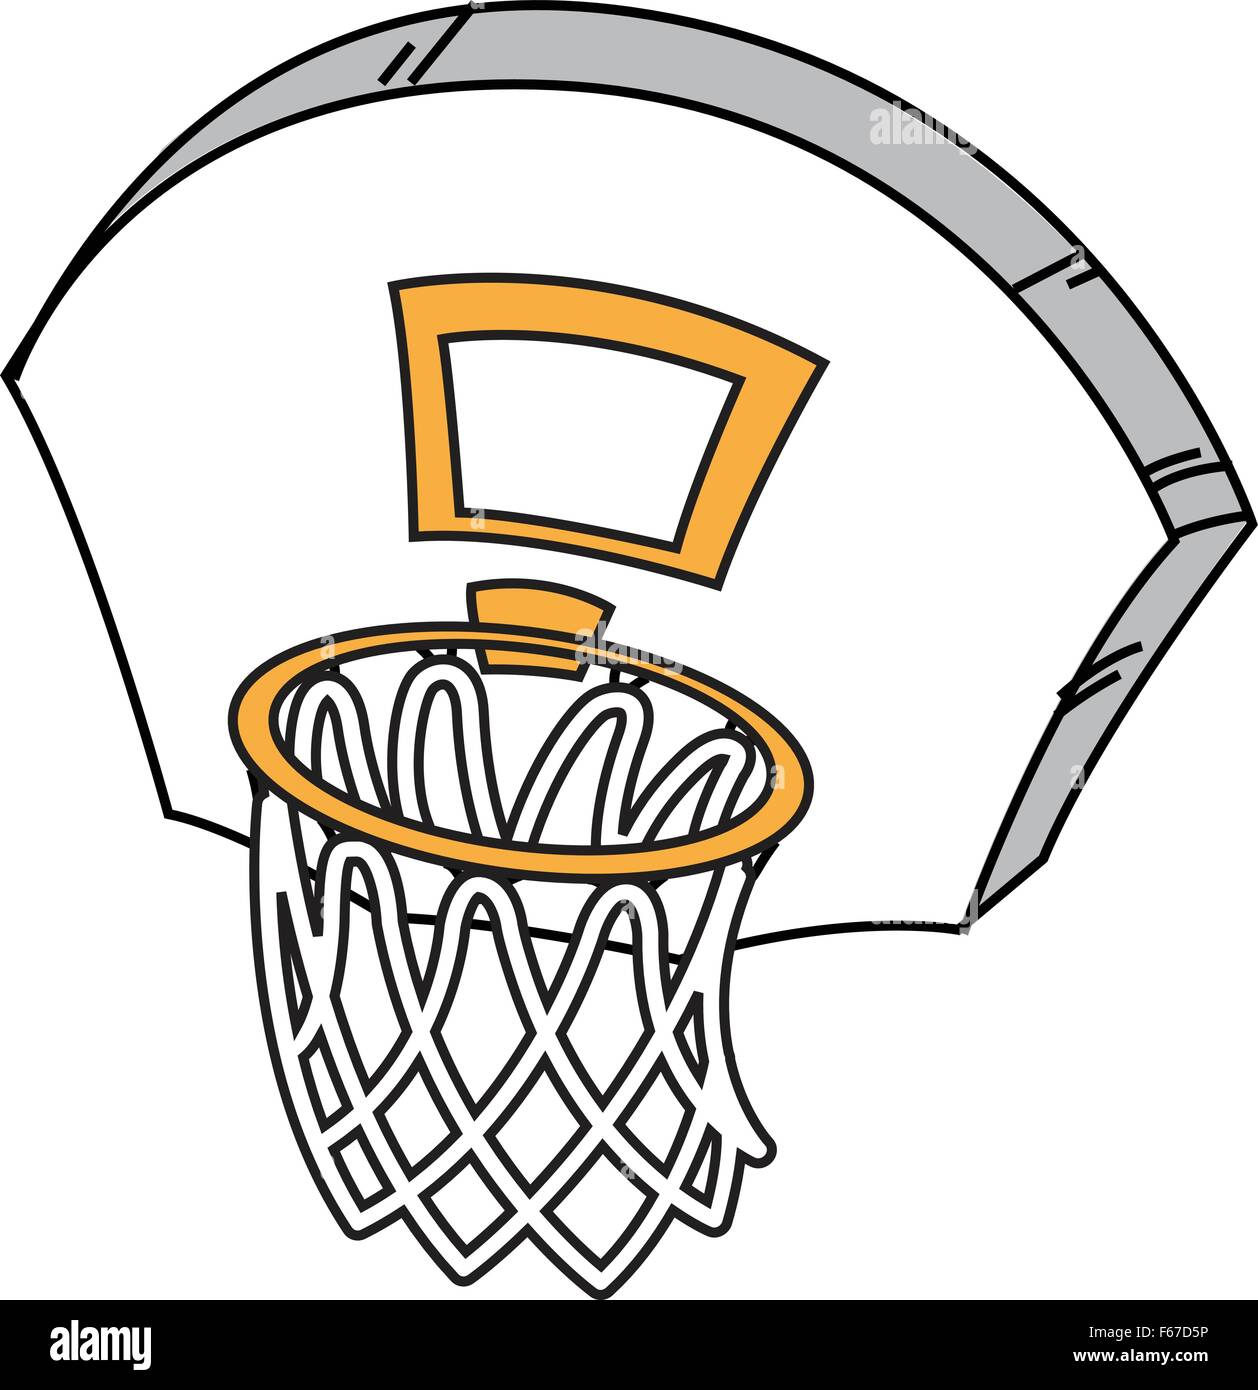 Cartoon Basketball Hoop Net And Backboard Stock Vector Image Art Alamy Choose from over a million free vectors, clipart graphics, vector art images, design templates, and illustrations created by artists worldwide! cartoon basketball hoop net and backboard stock vector image art alamy